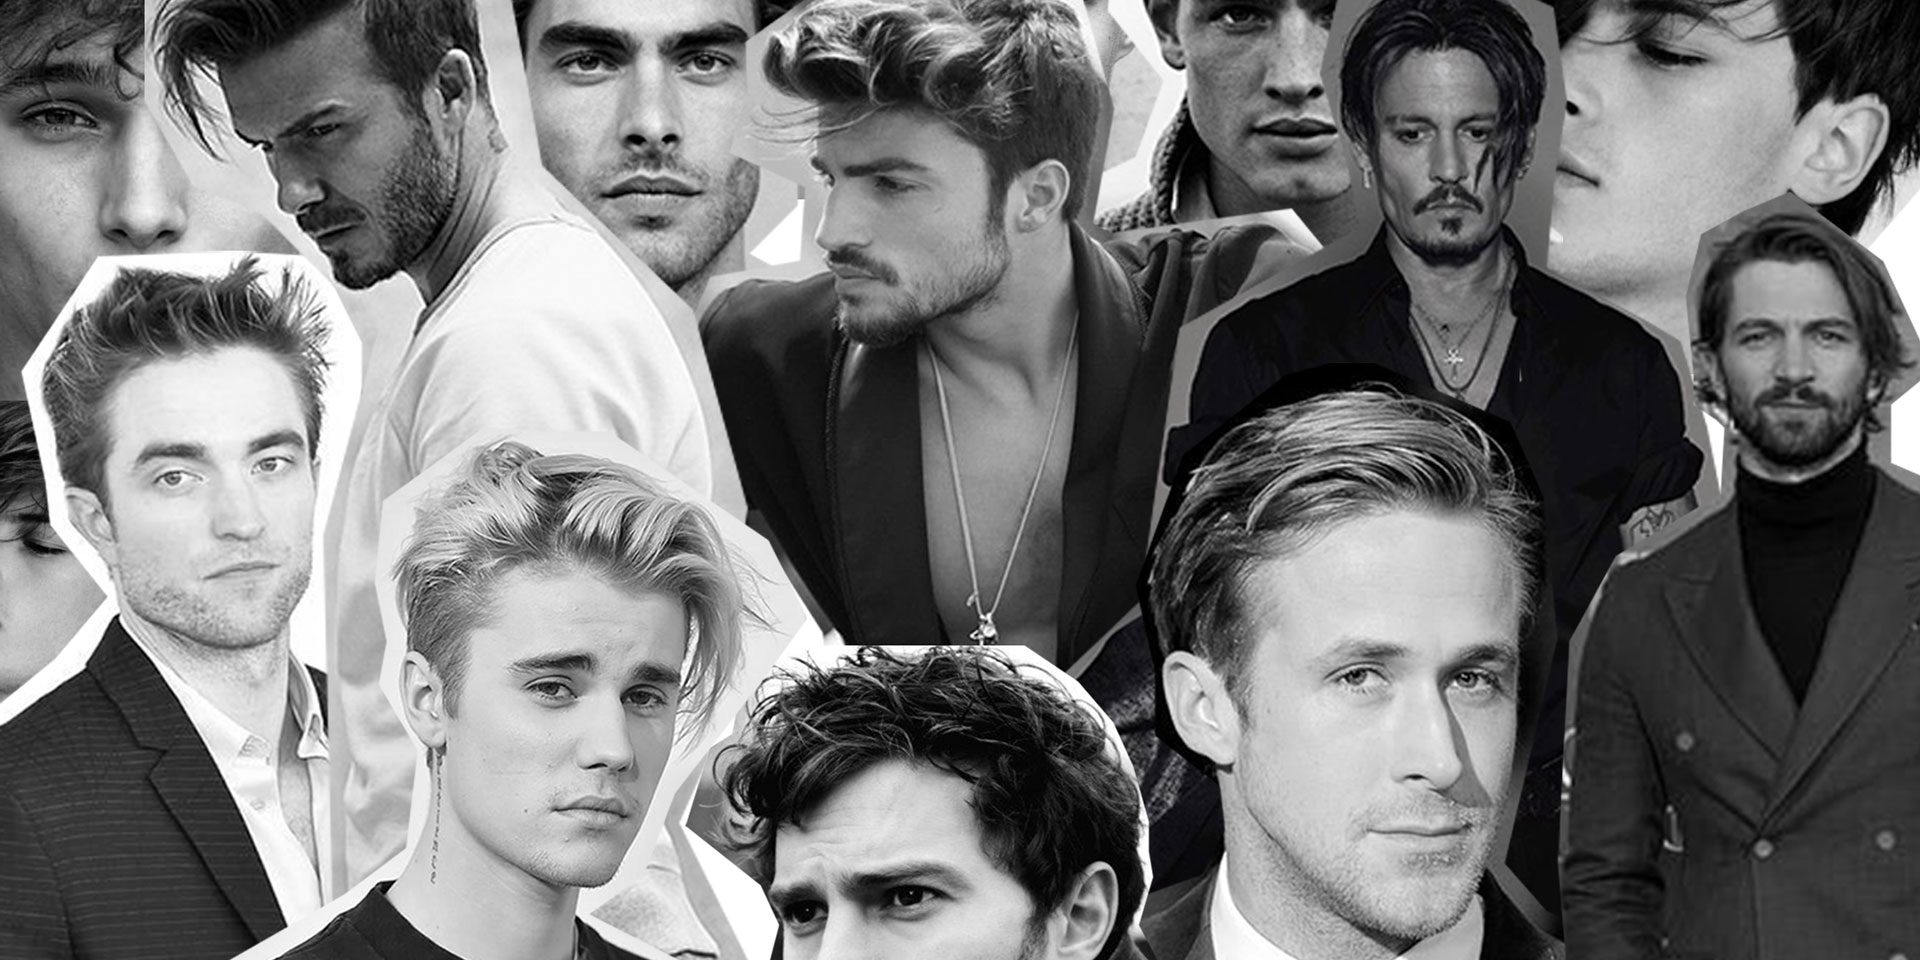 Hairstyles January 2019: The Ultimate Male Hair Trends Of 2019